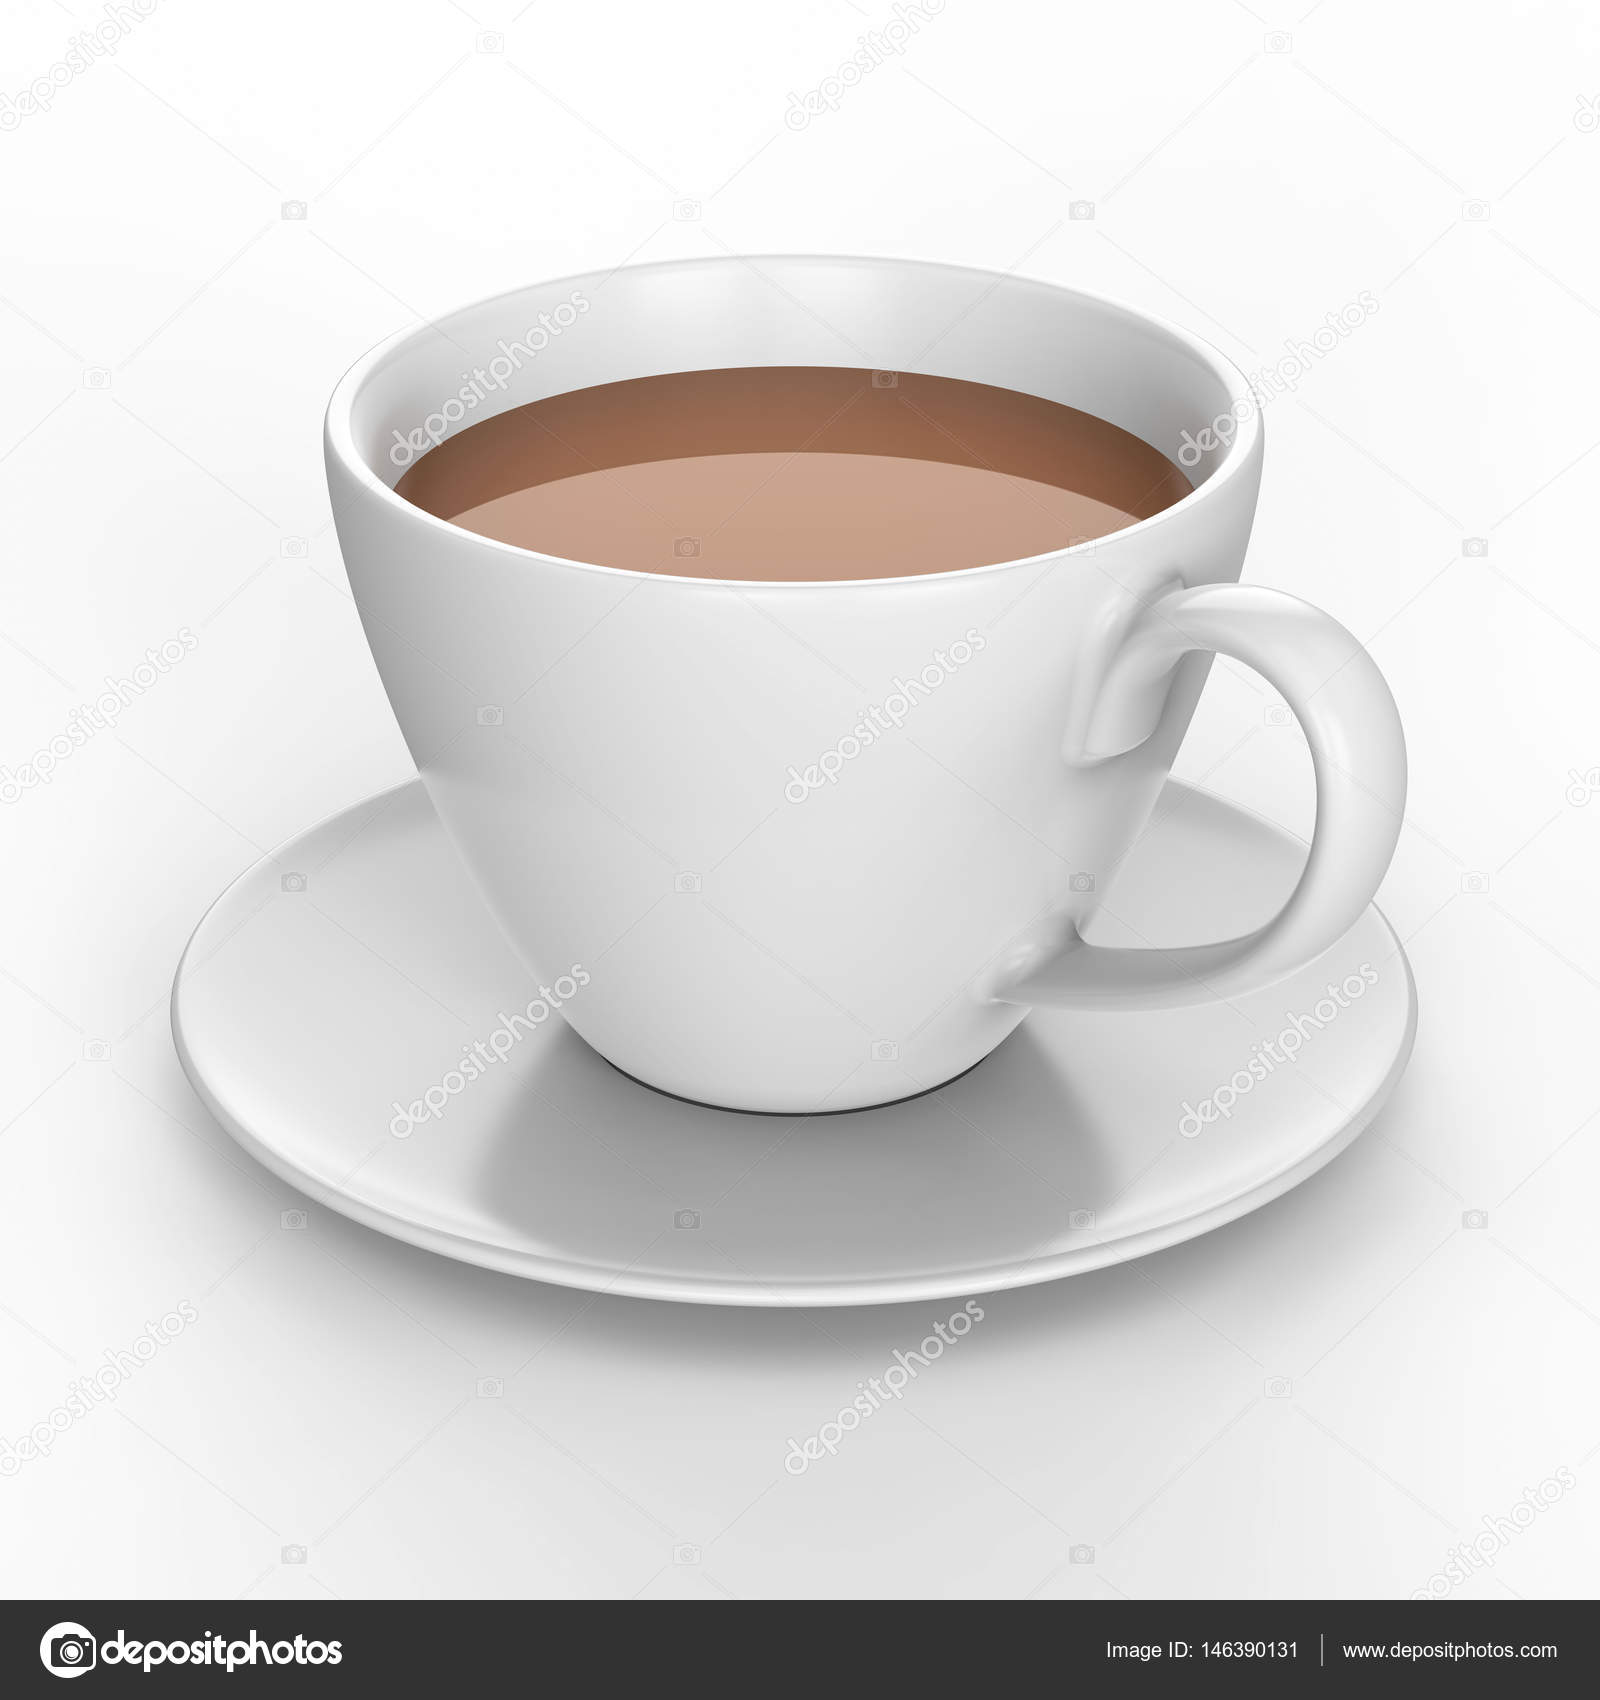 3d Illustration White Cup And Saucer With Tea Coffee Stock Photo Image By C 3djewelry 146390131